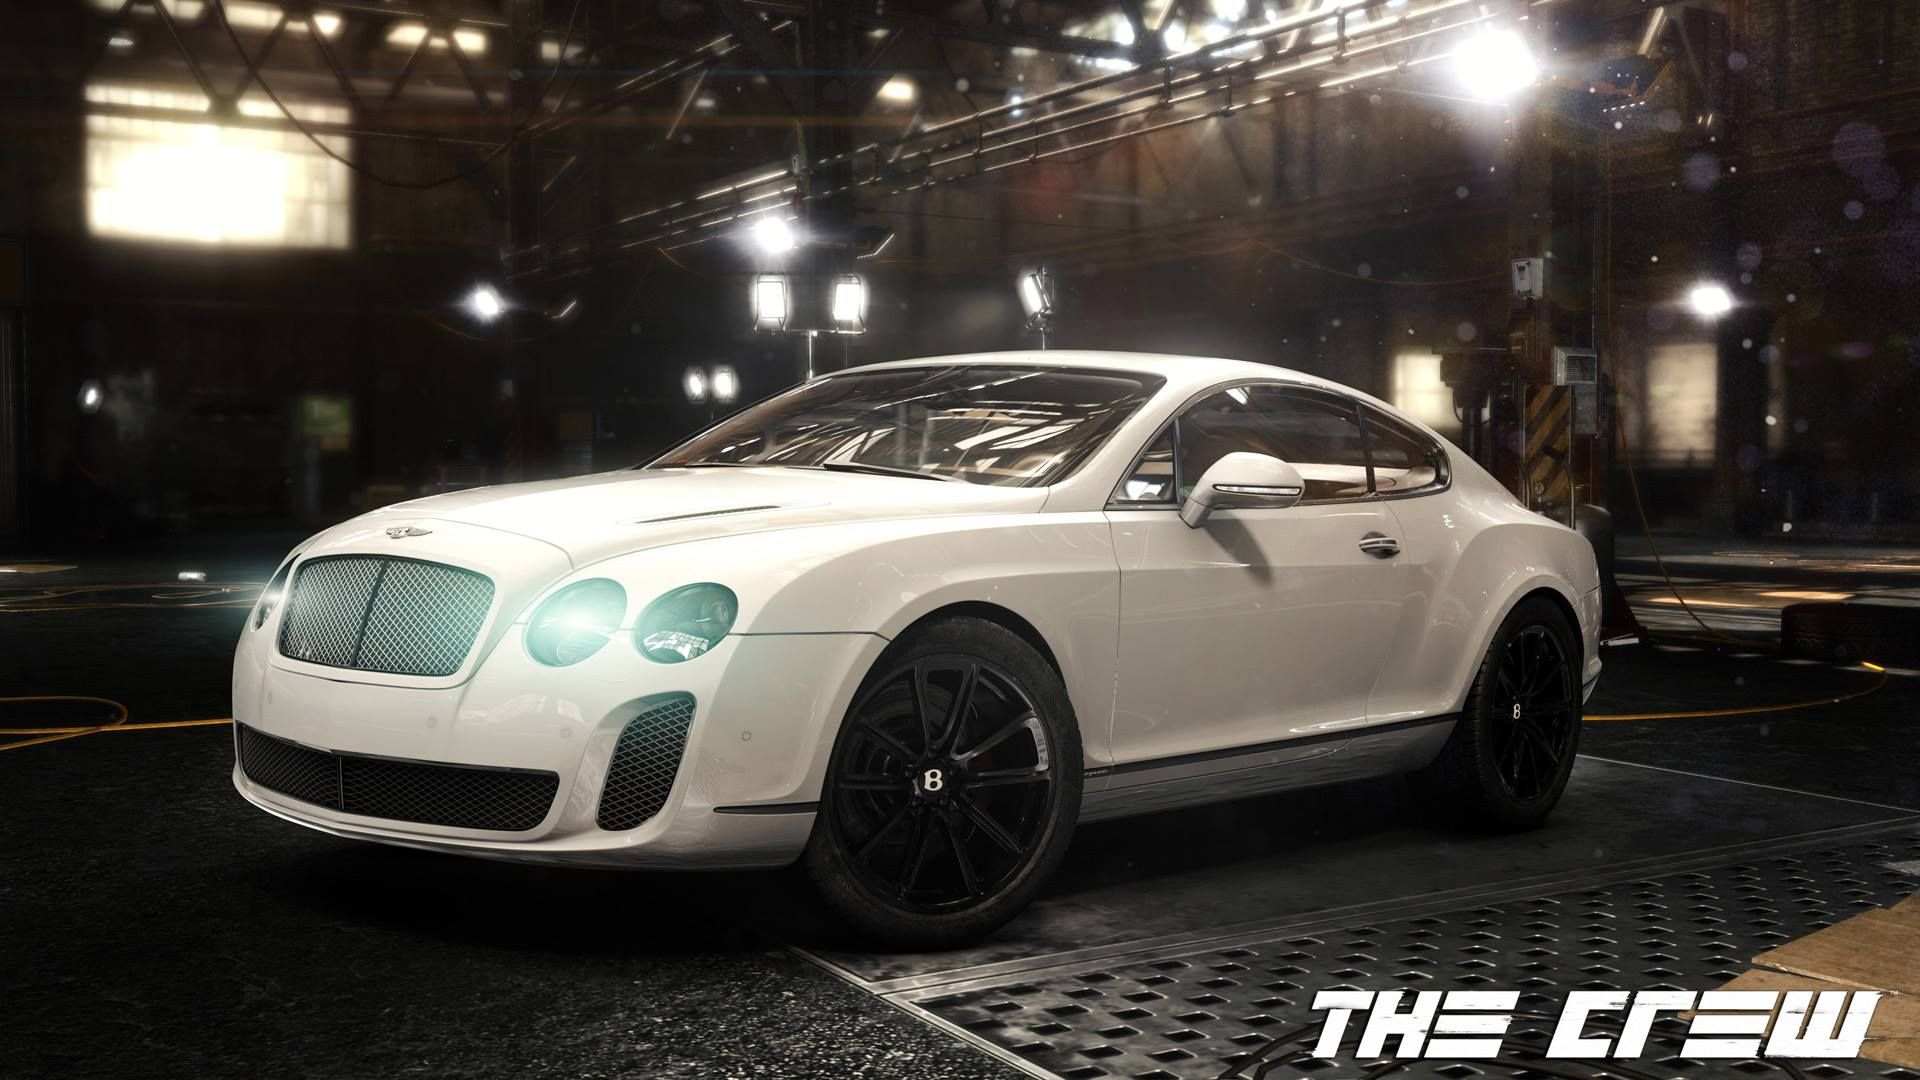 Bentley Continental GT is the latest addition to Ubisoft s The Crew